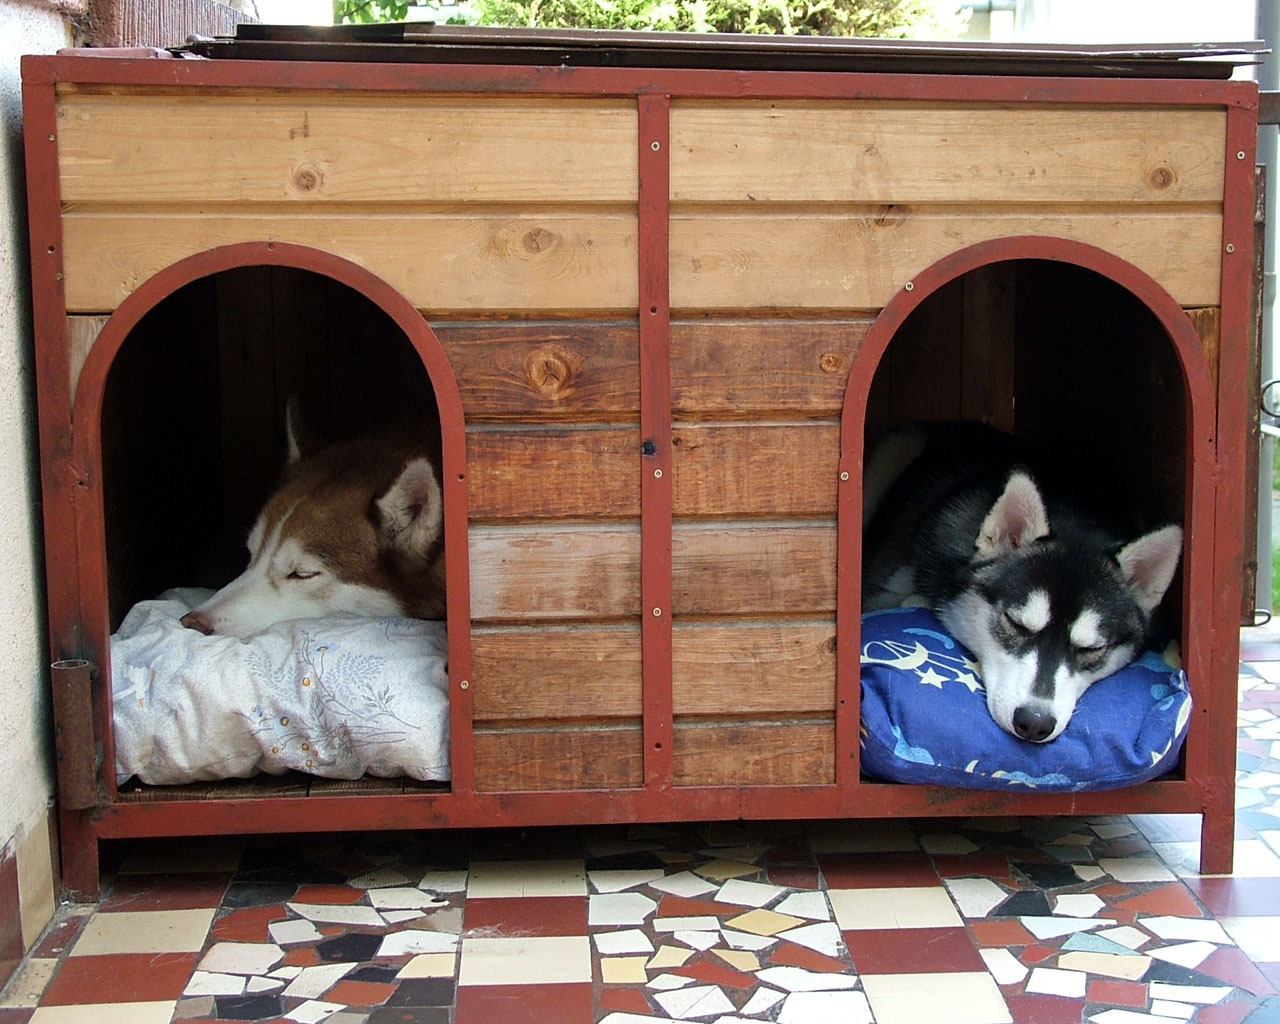 A doghouse provides shade and a cozy place to nap.